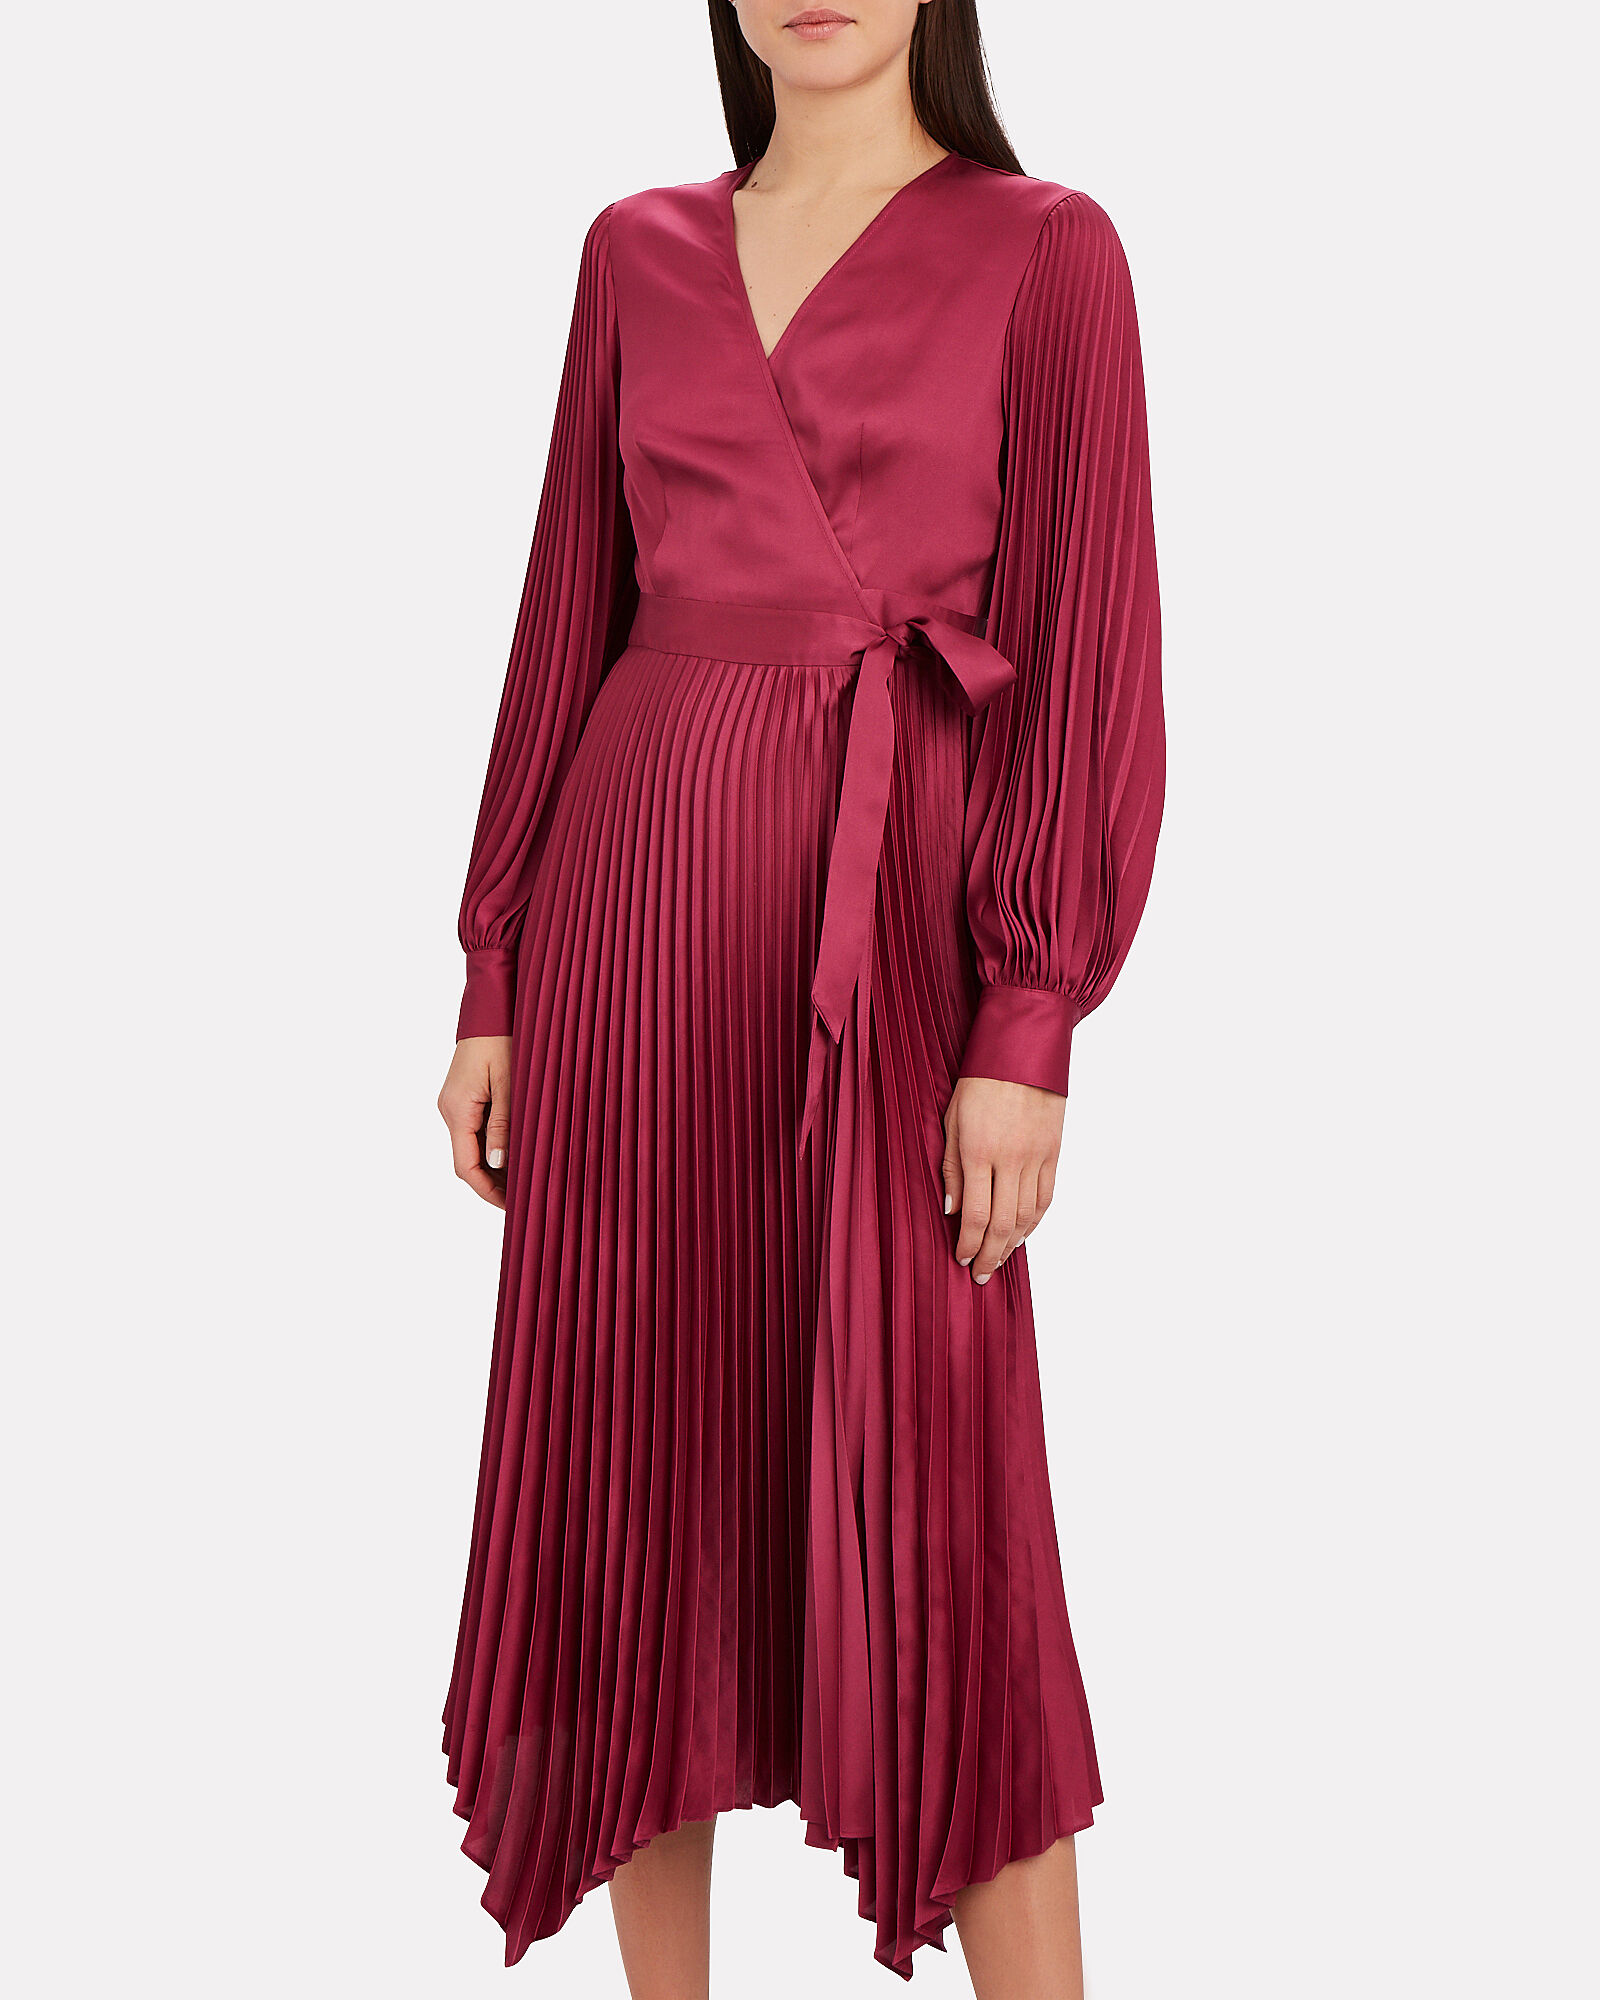 Allison Pleated Wrap Dress, PURPLE, hi-res